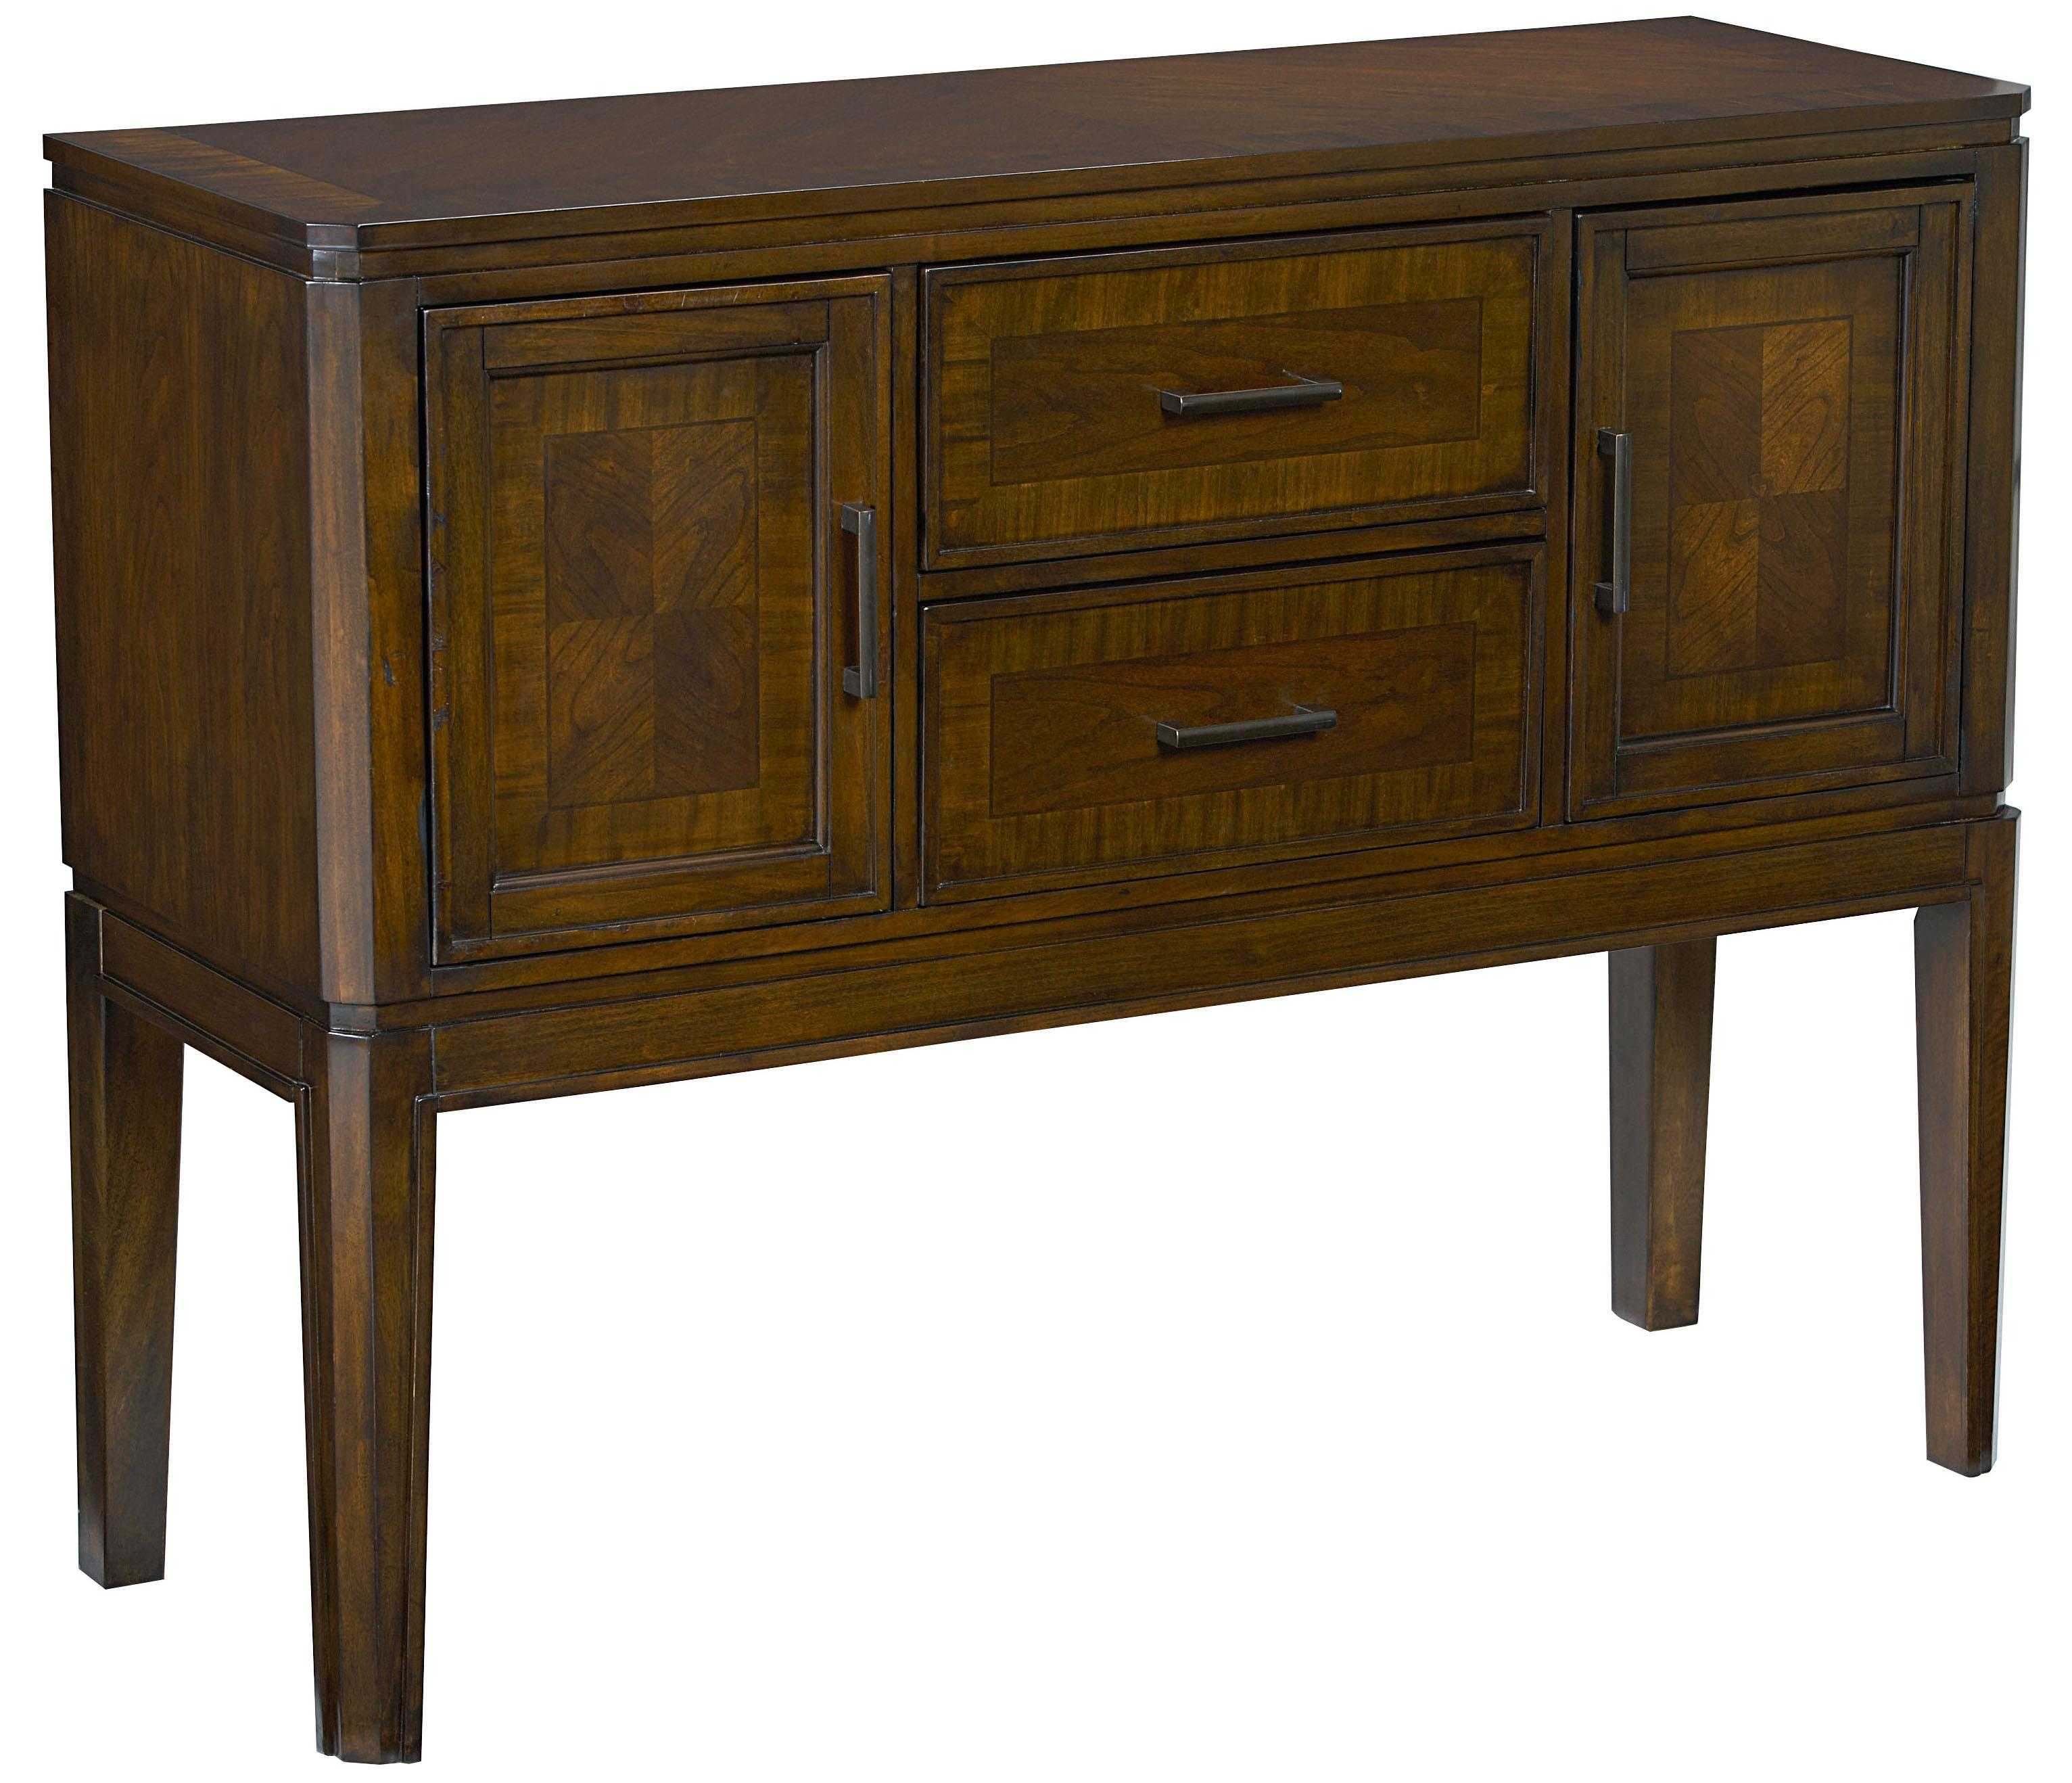 Server in Cherry Finish with Decorative Veneer Patterns by